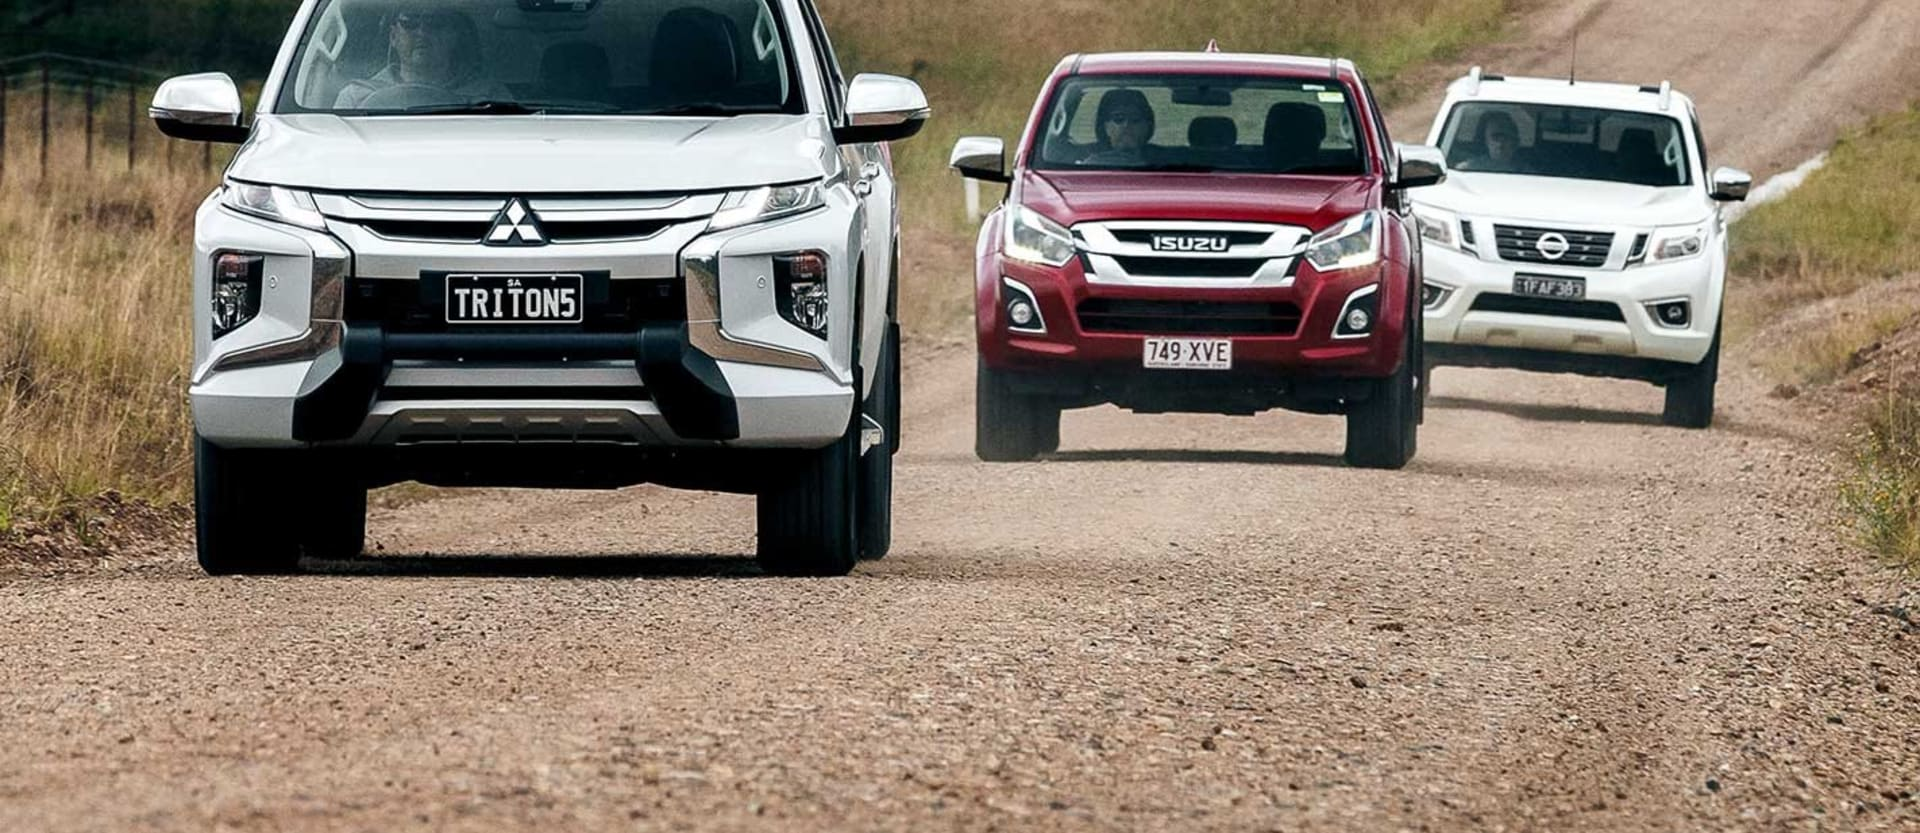 VFACTS 2019 Utes best-selling vehicles September